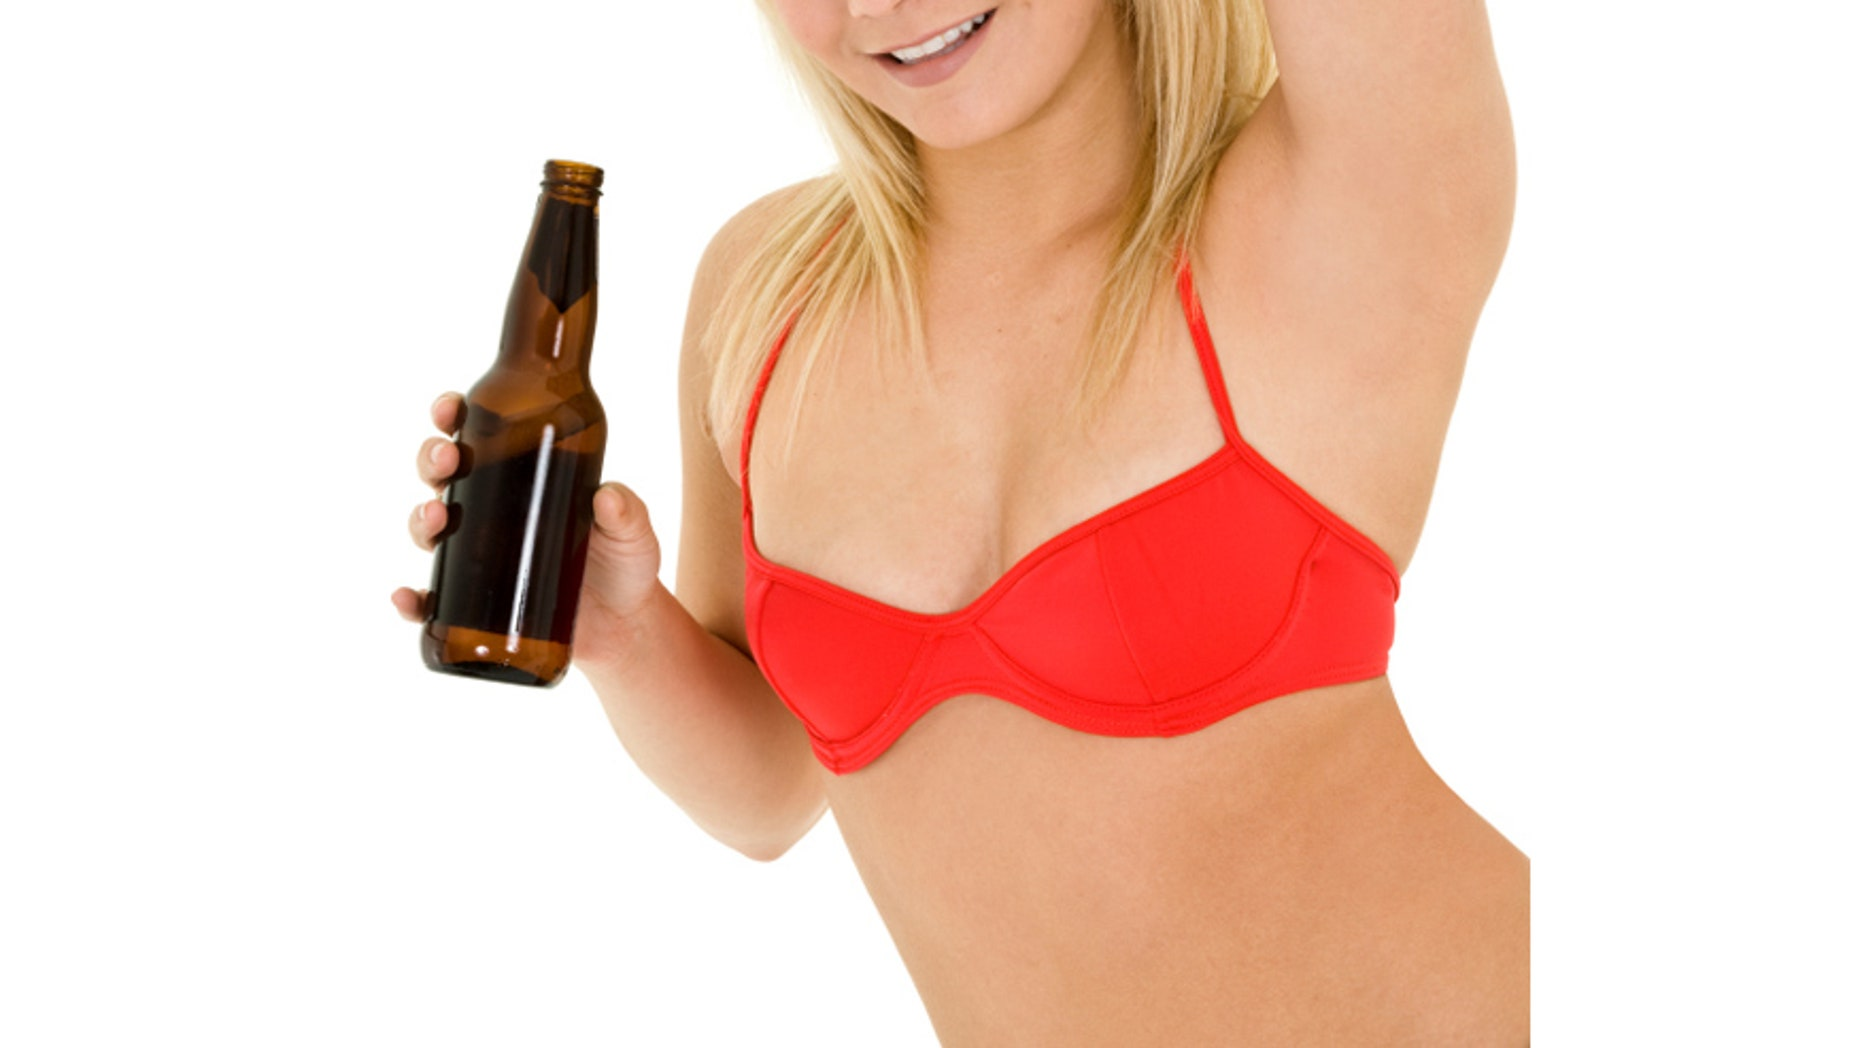 Craft brewery combines breasts and beer in new ad.